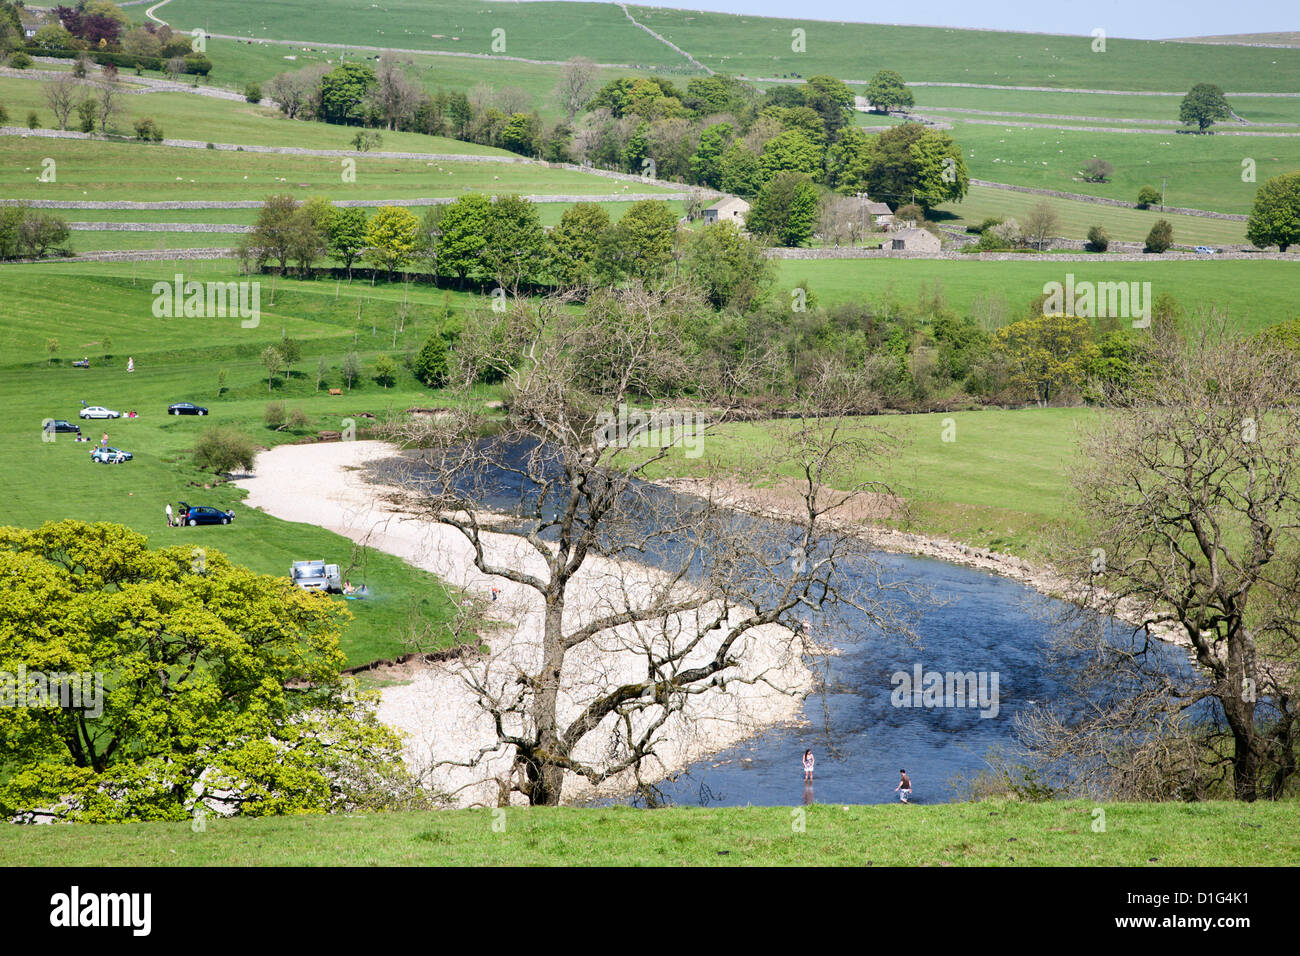 The River Wharfe at Burnsall, Wharfedale, Yorkshire Dales, Yorkshire, England, United Kingdom, Europe - Stock Image